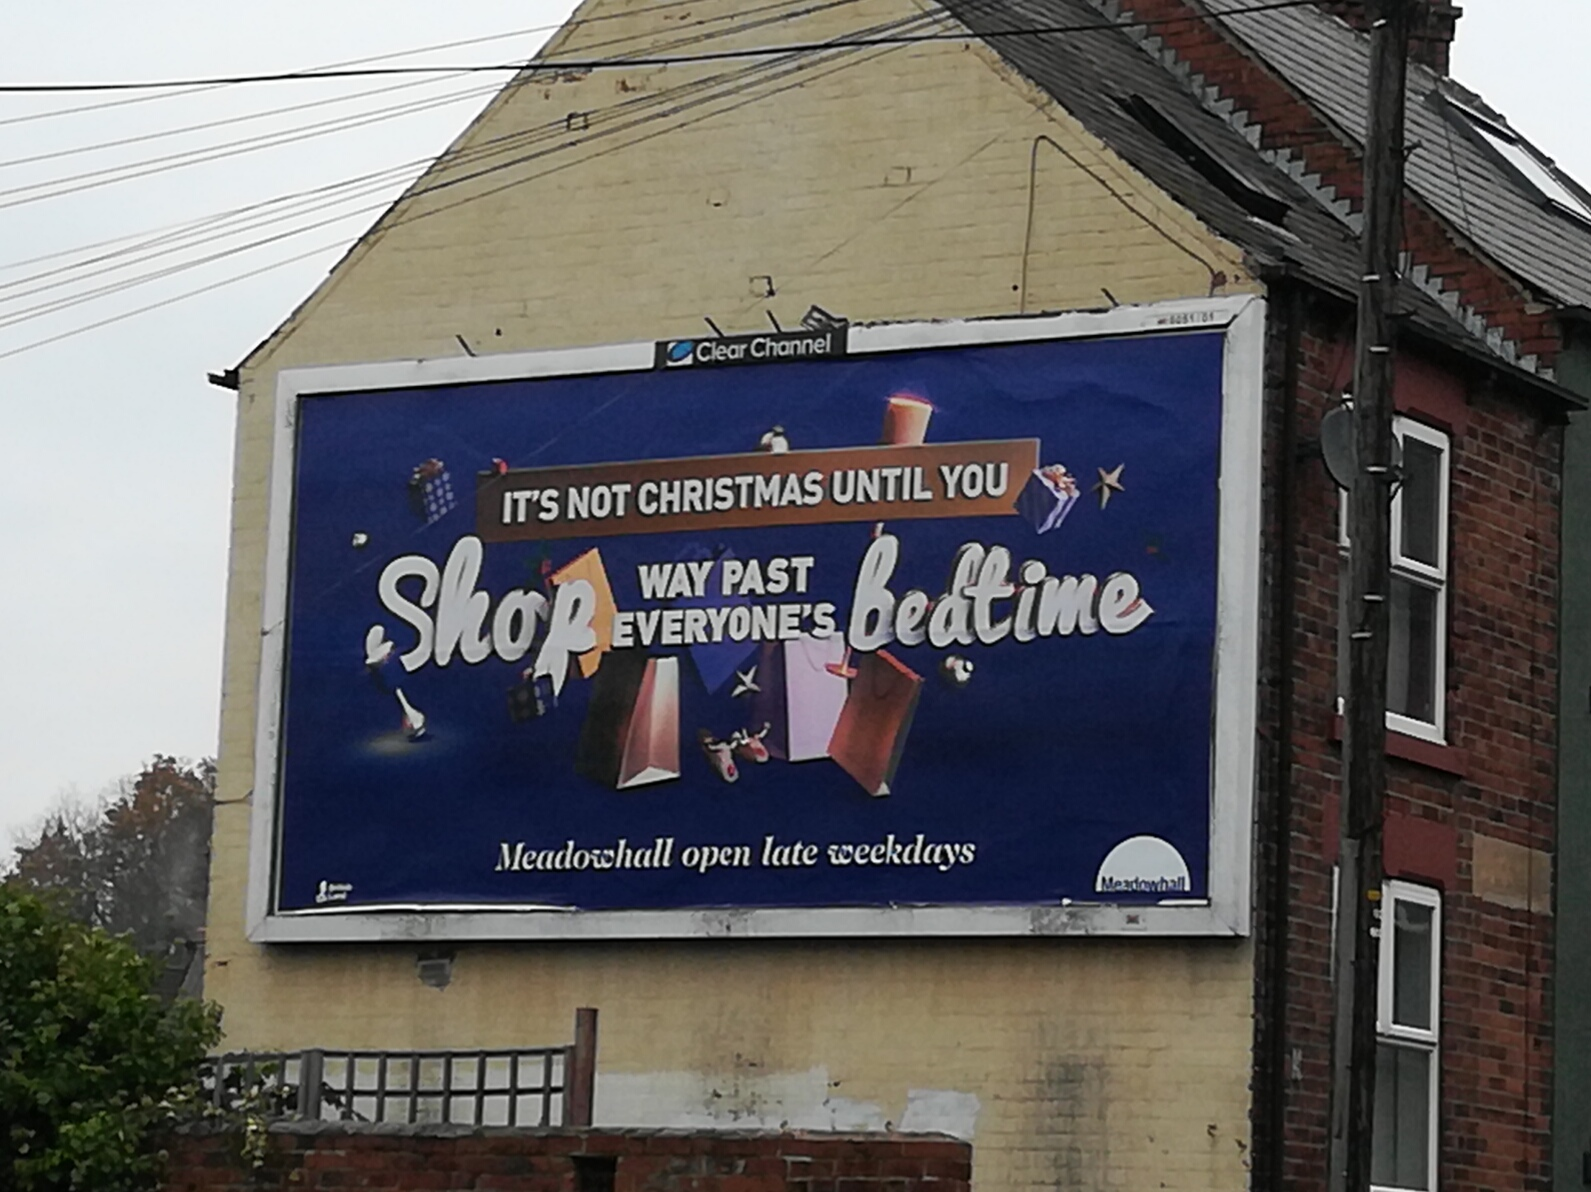 Christmas shopping billboard